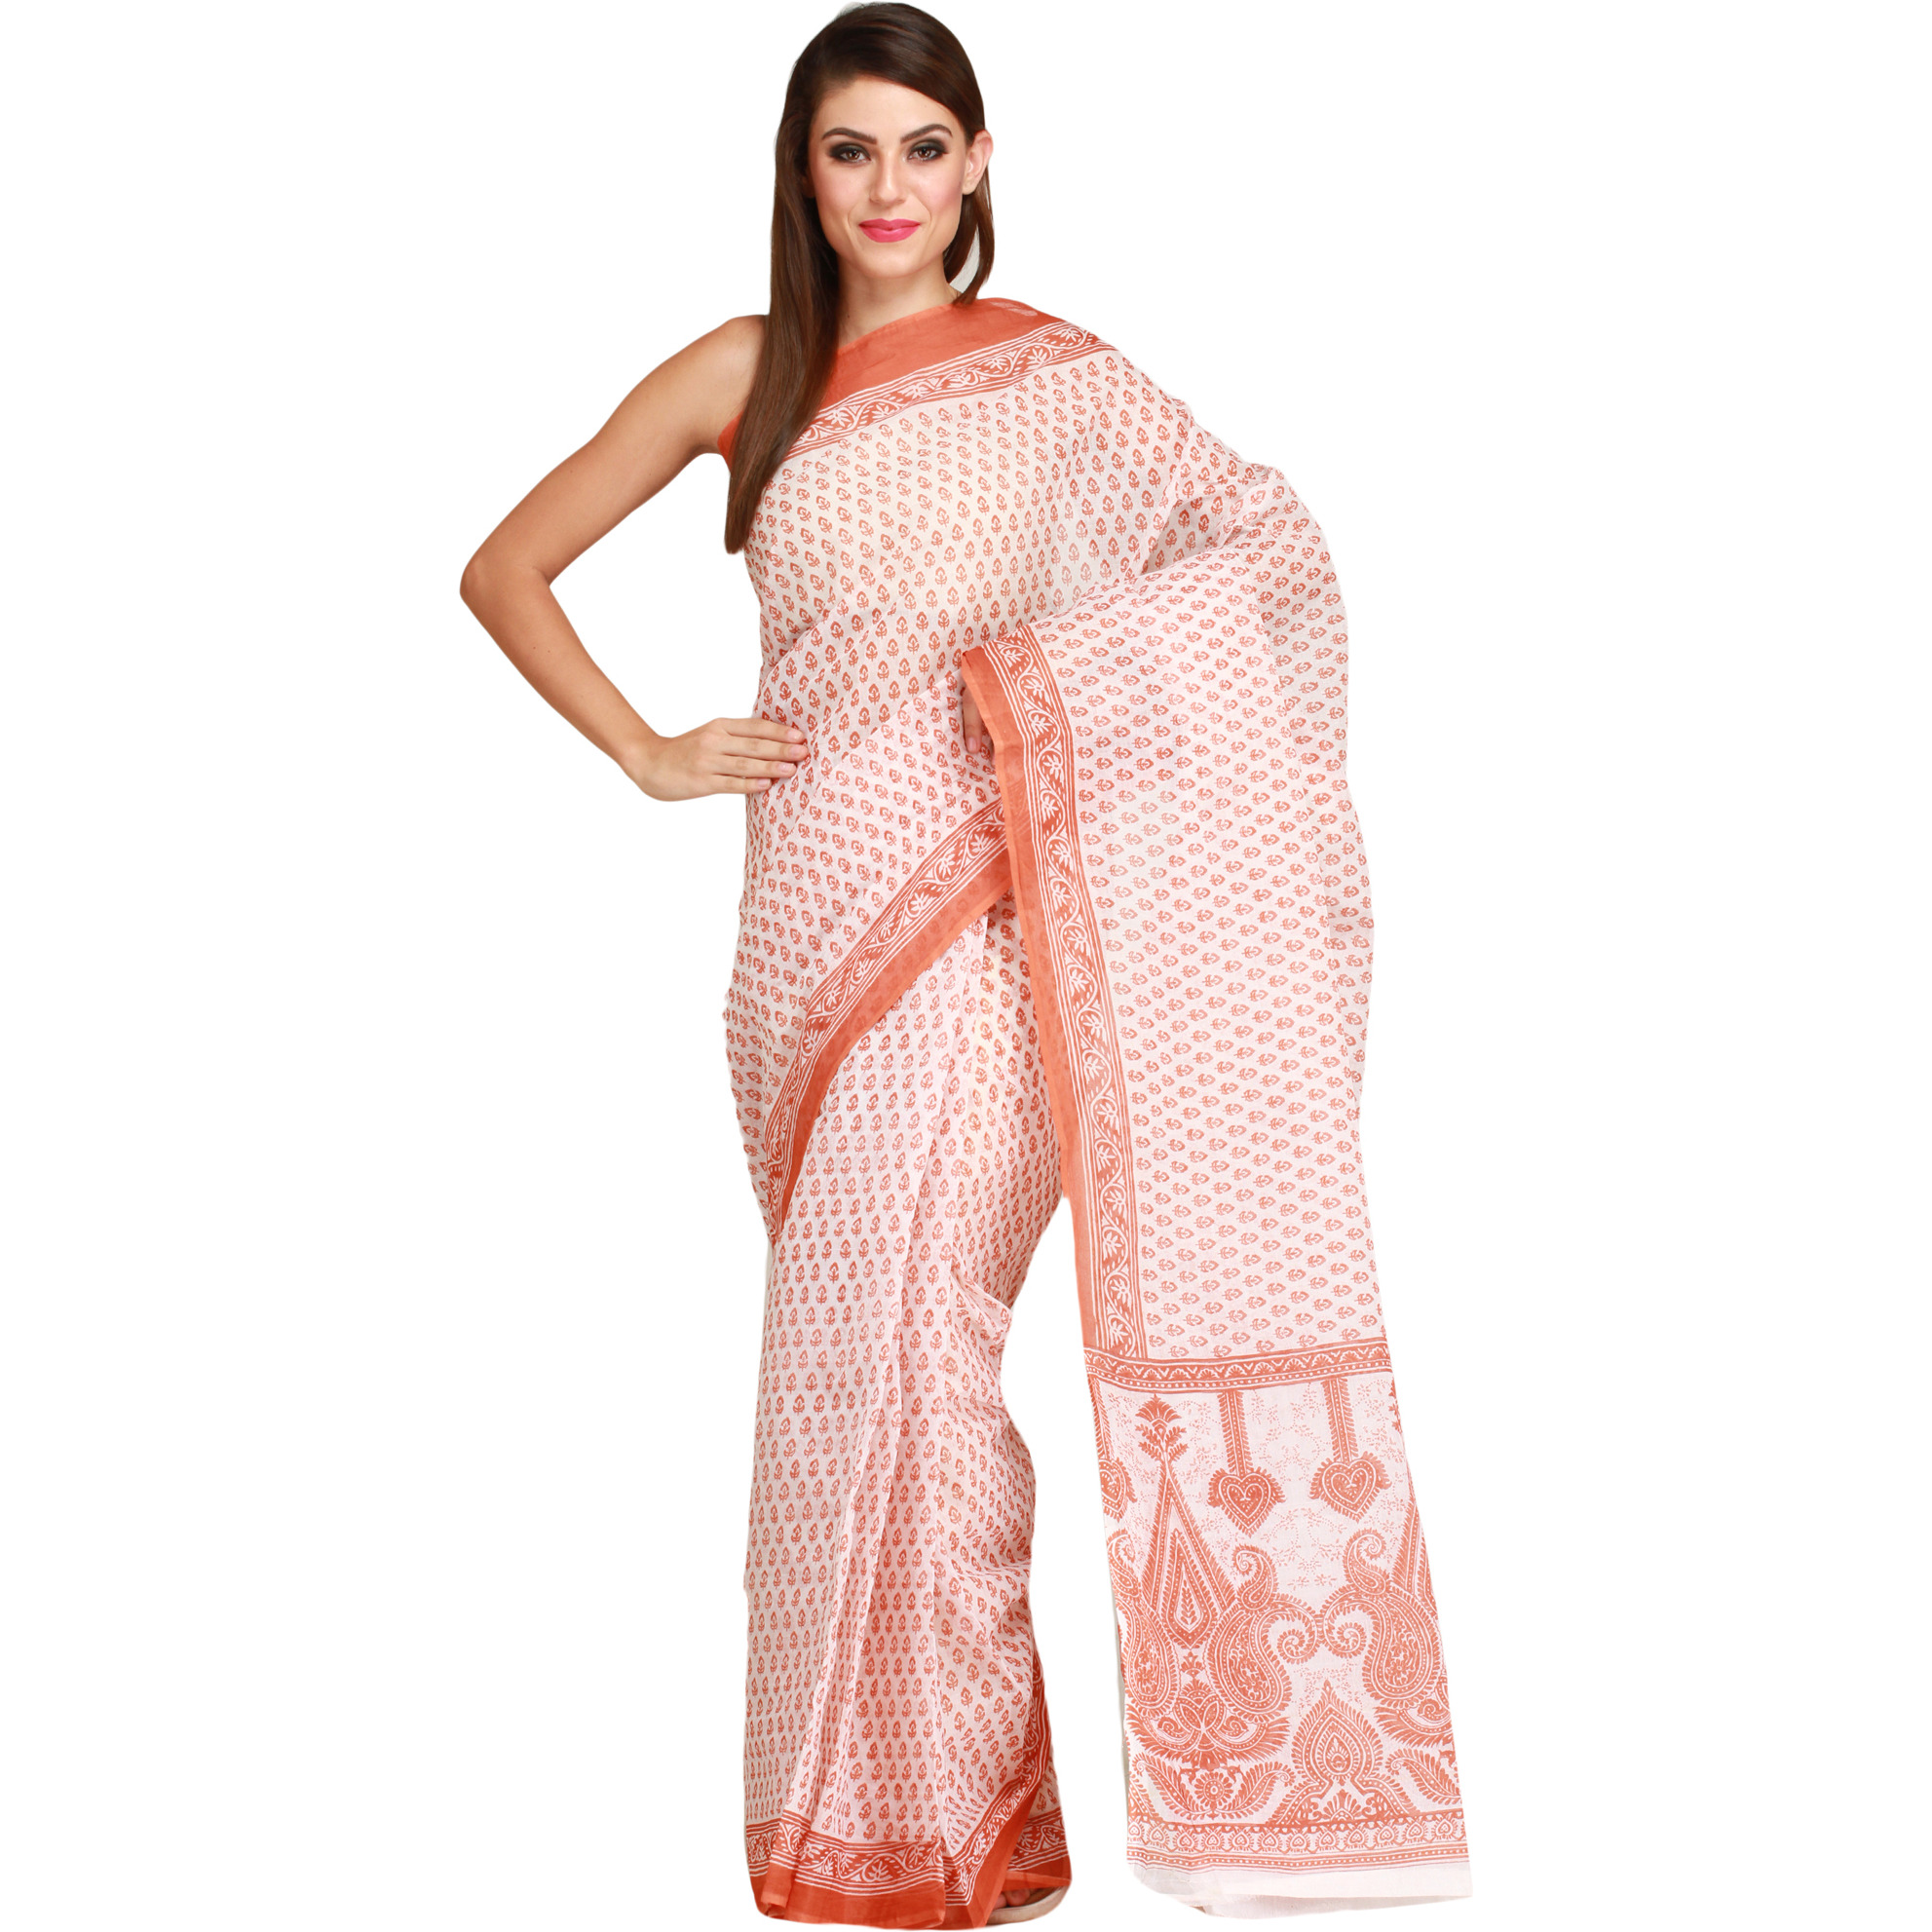 White and Brown Sari with All-Over Printed Bootis and Paisleys on Pallu